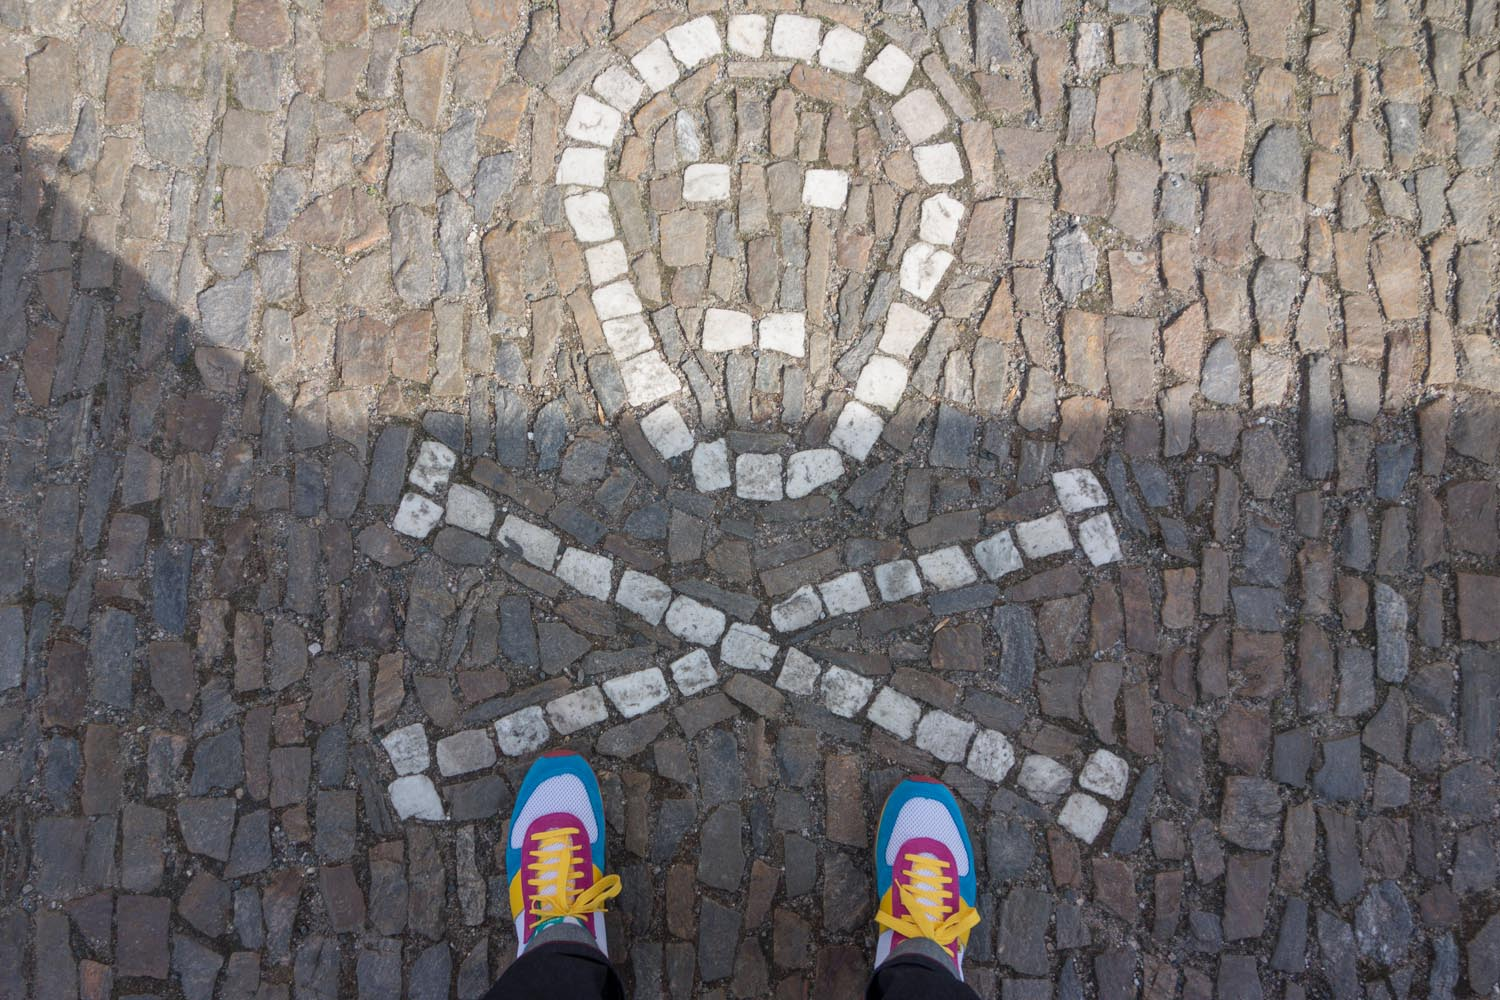 Jan's Botas sneakers in front of the Ossuary in Sedlec, Kutna Hora.